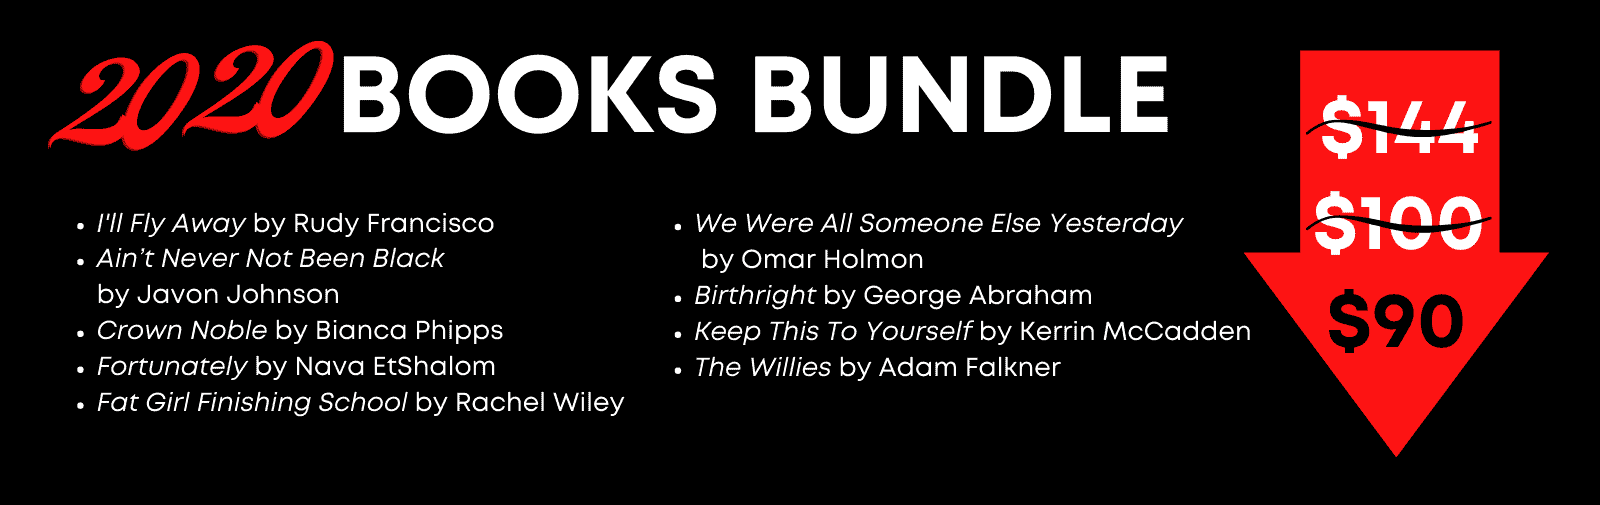 2020 Books Bundle